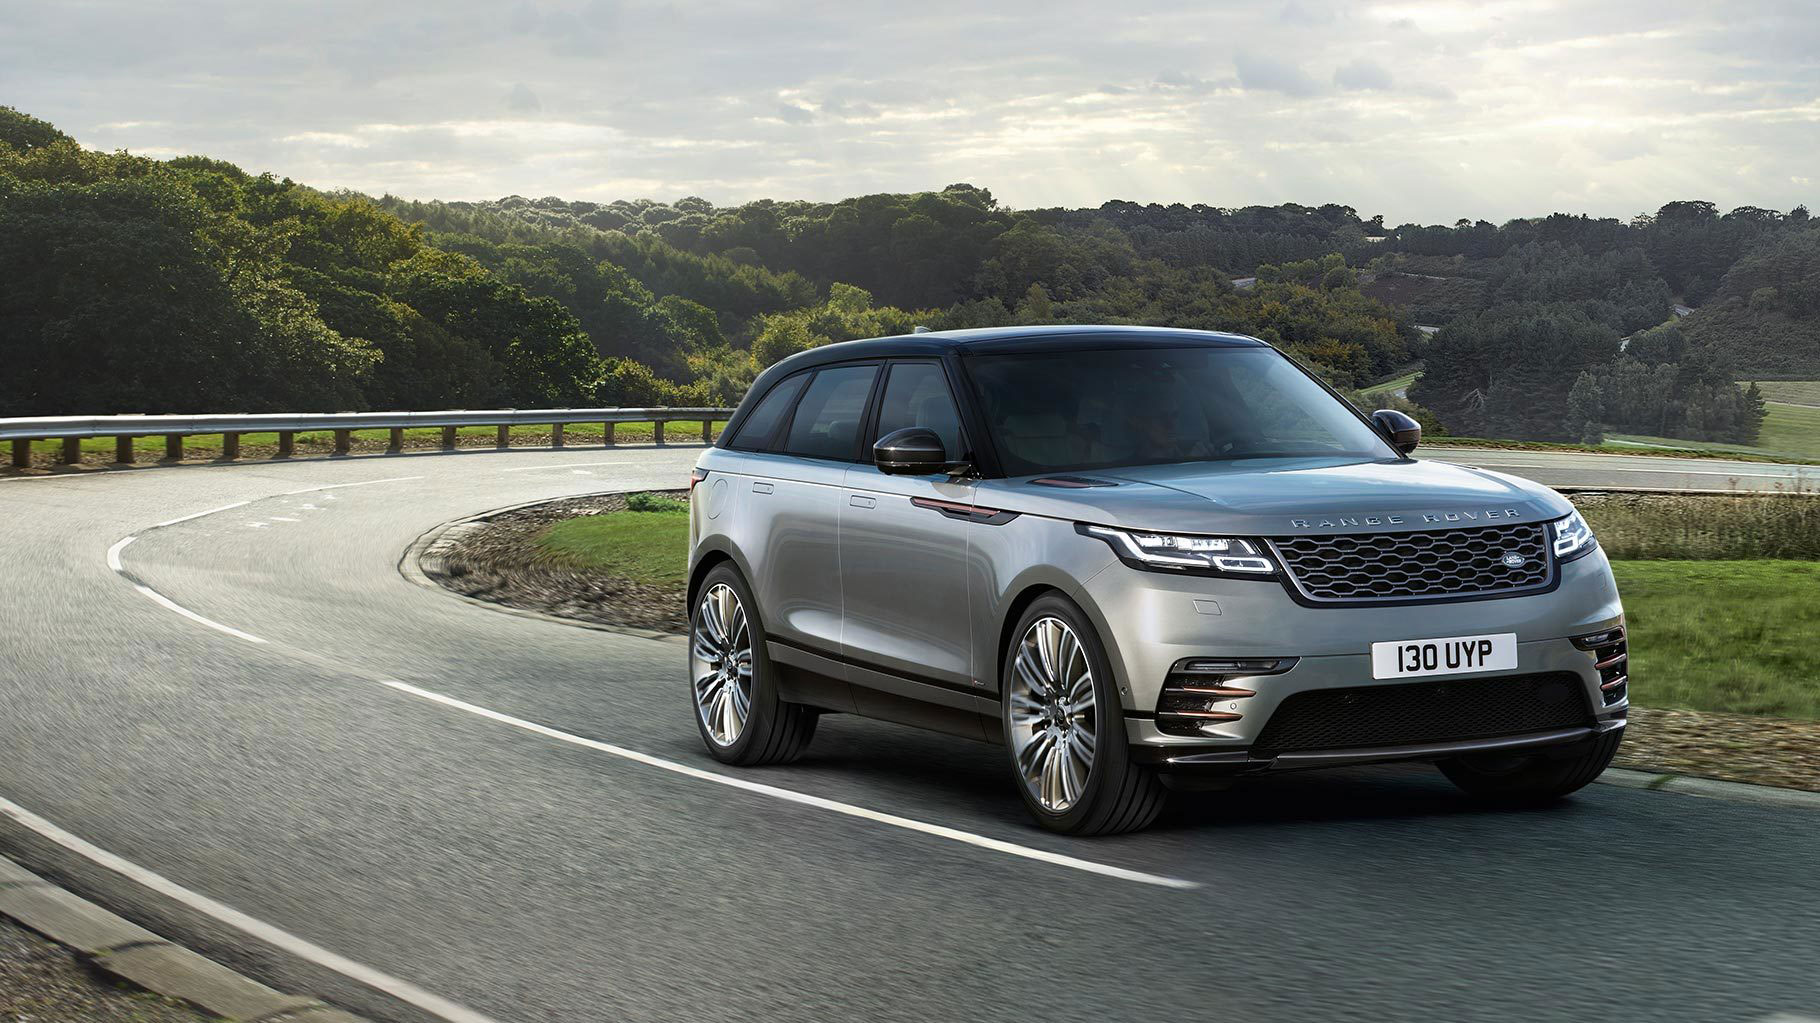 new range rover velar cars grange. Black Bedroom Furniture Sets. Home Design Ideas